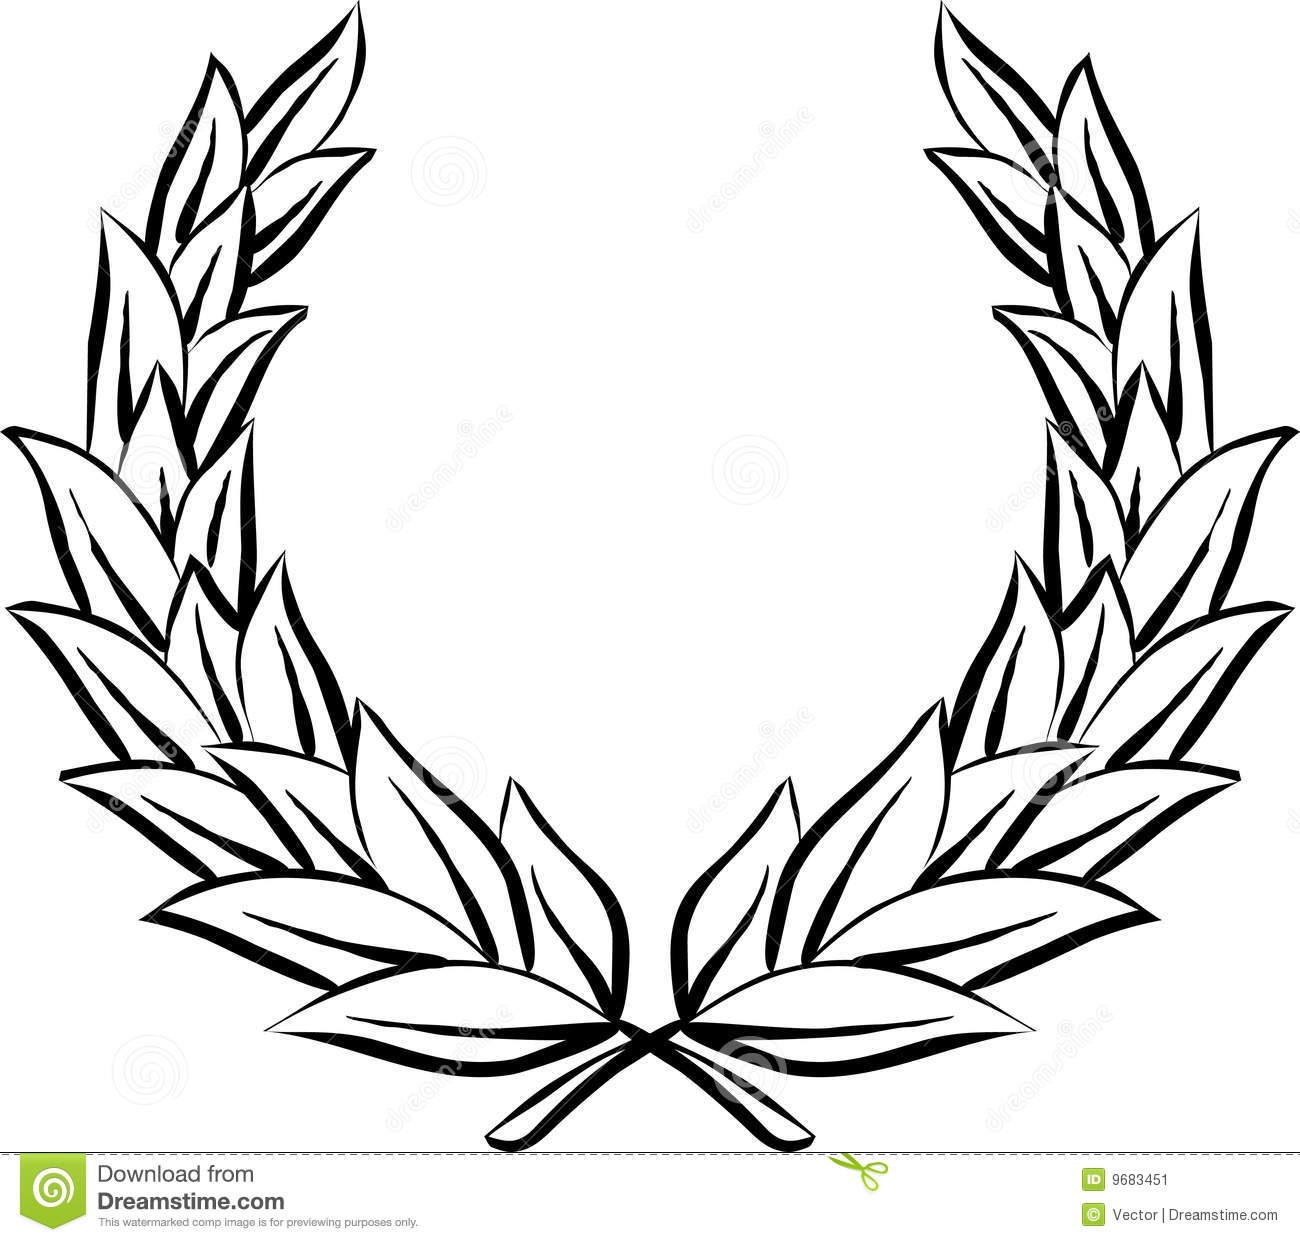 Laurel wreath (Vector)